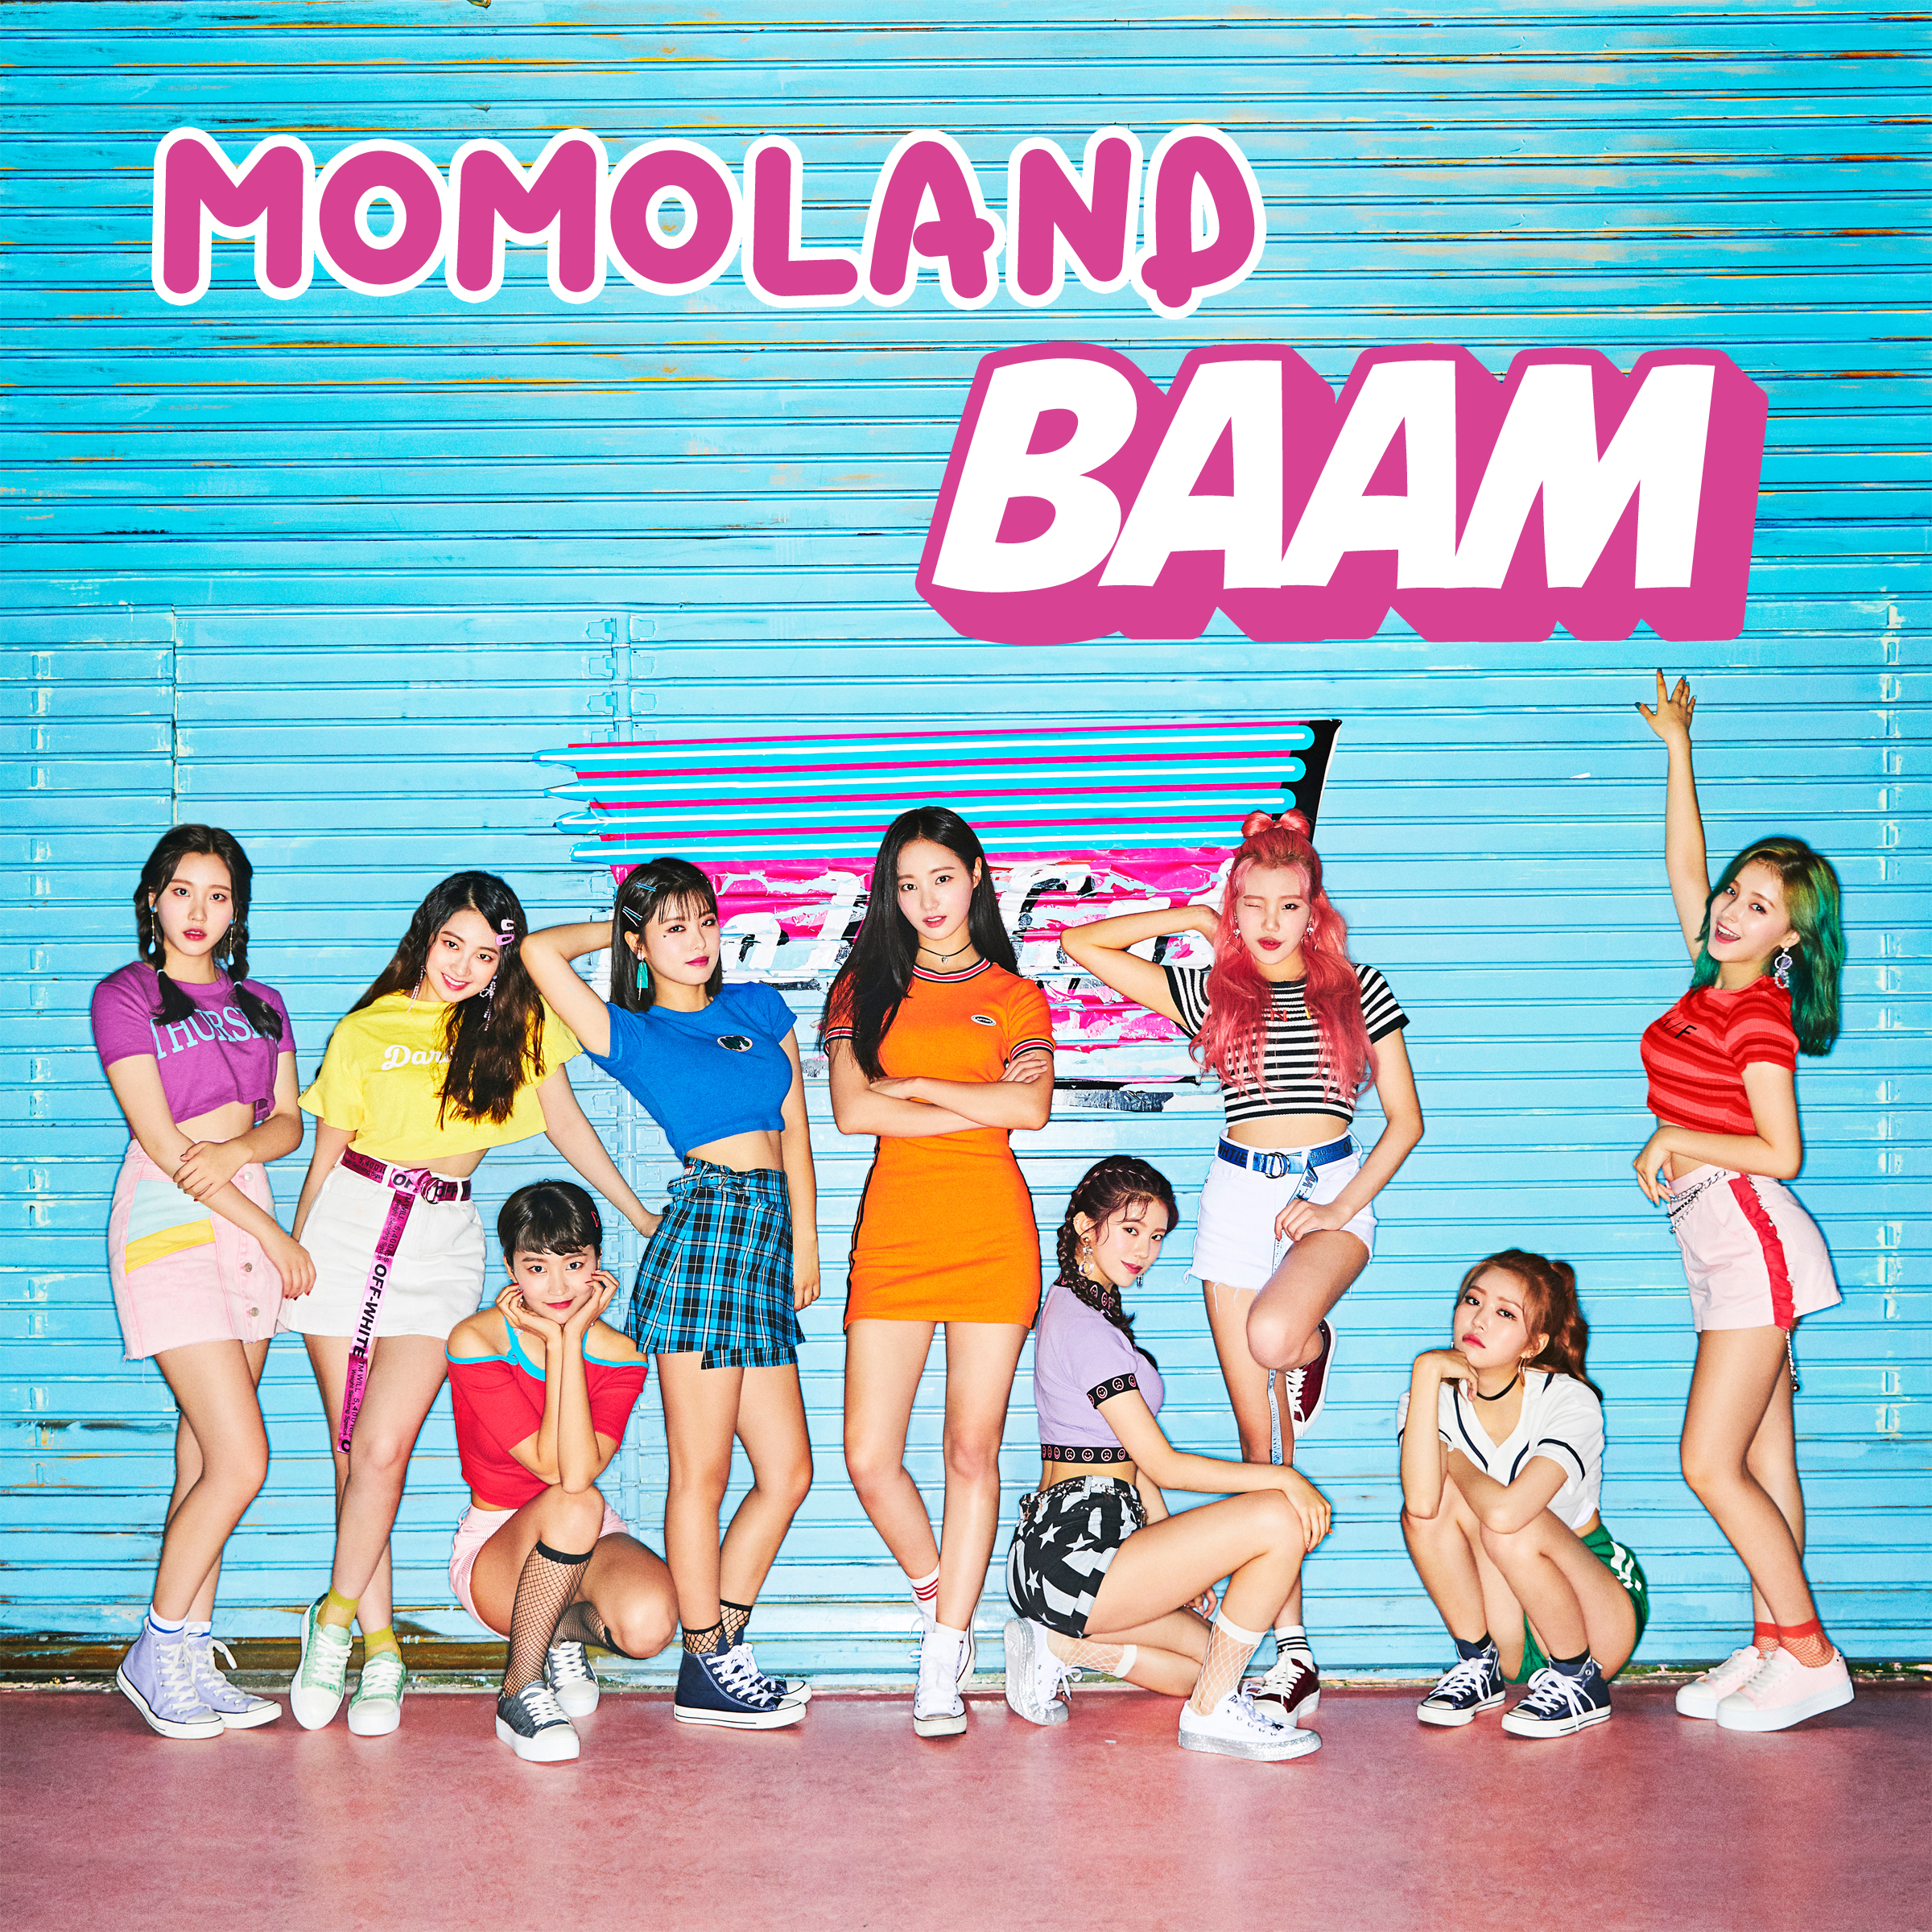 20180629.0352.2 Momoland - Fun to the World (FLAC) cover.jpg